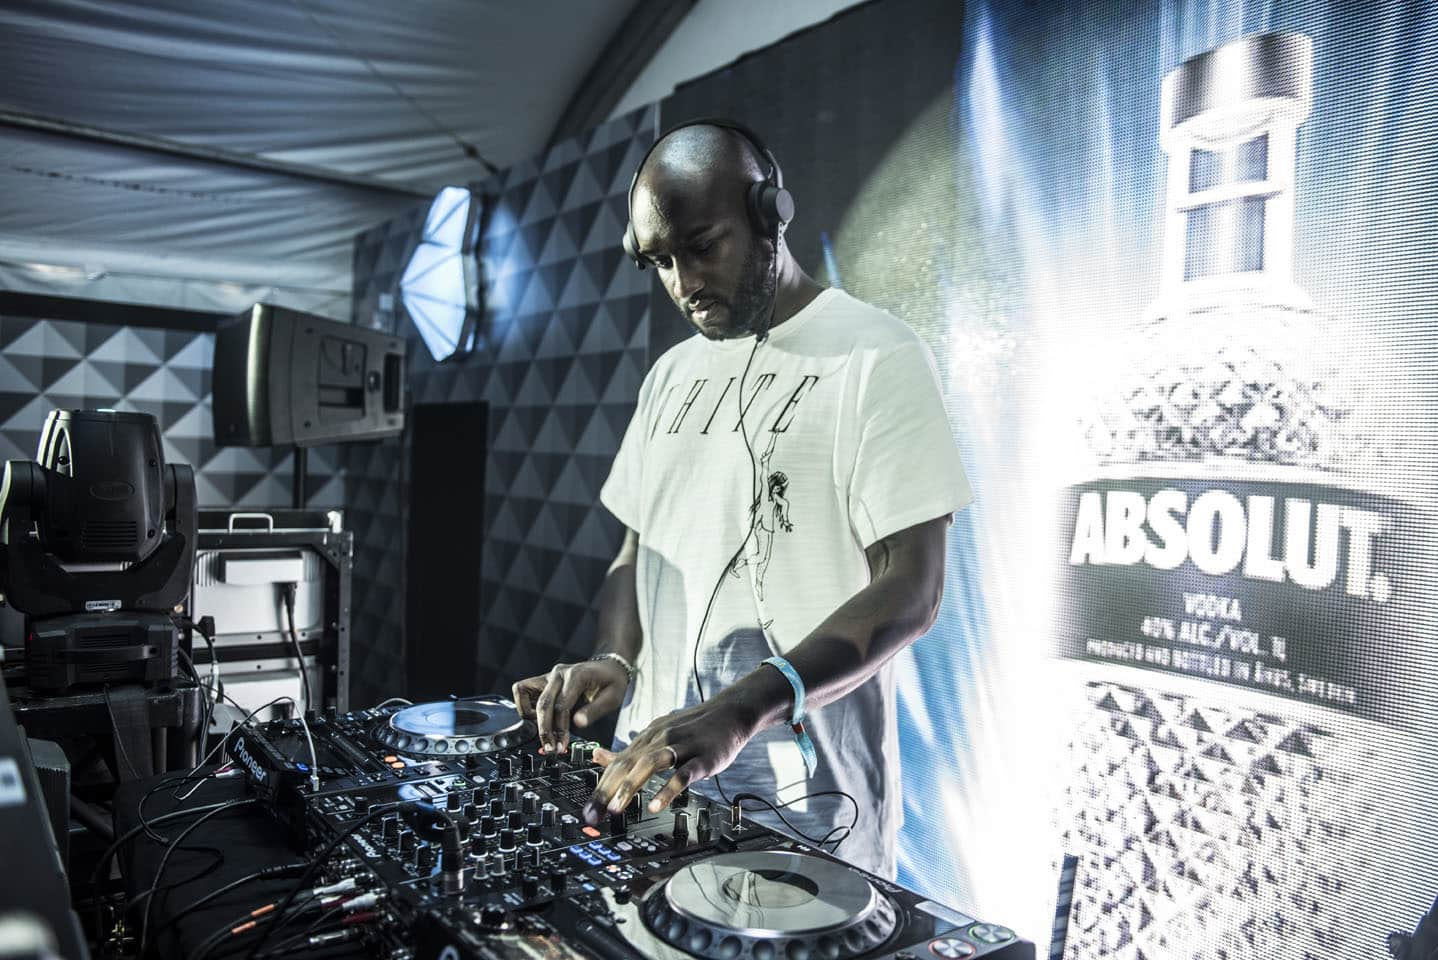 virgil abloh coachella spark bar sparkyournight